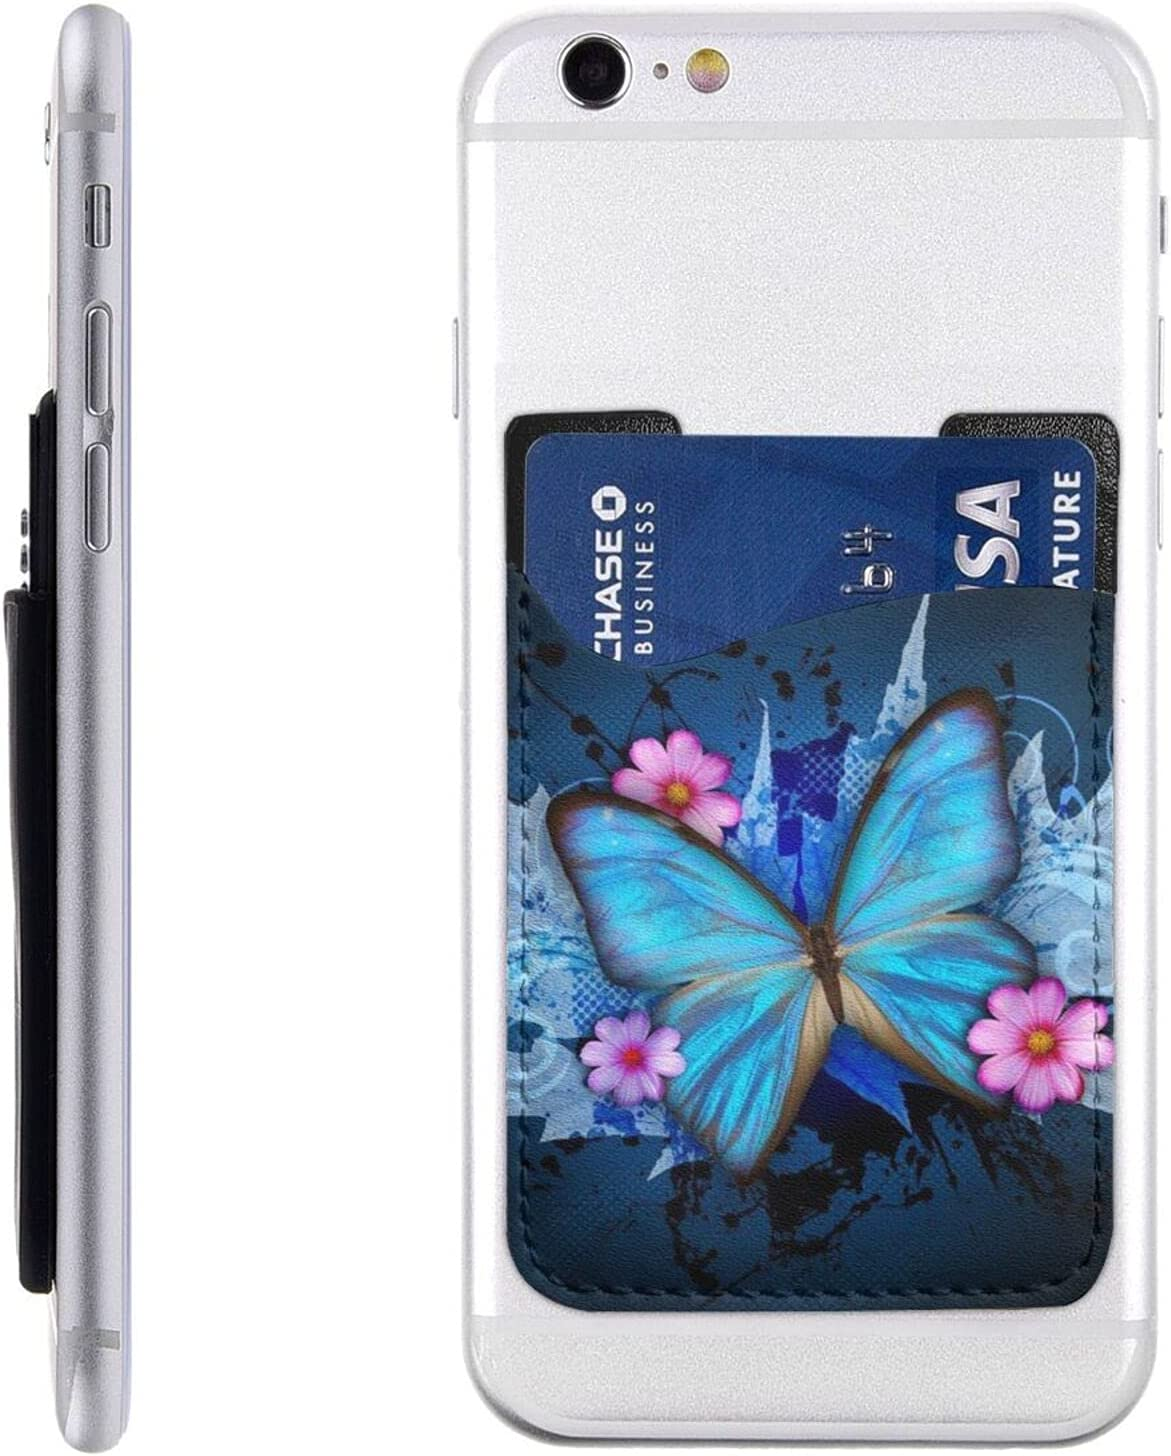 Fresno Mall Butterfly Phone OFFicial store Card Holder Cell Stick Slee On Wallet